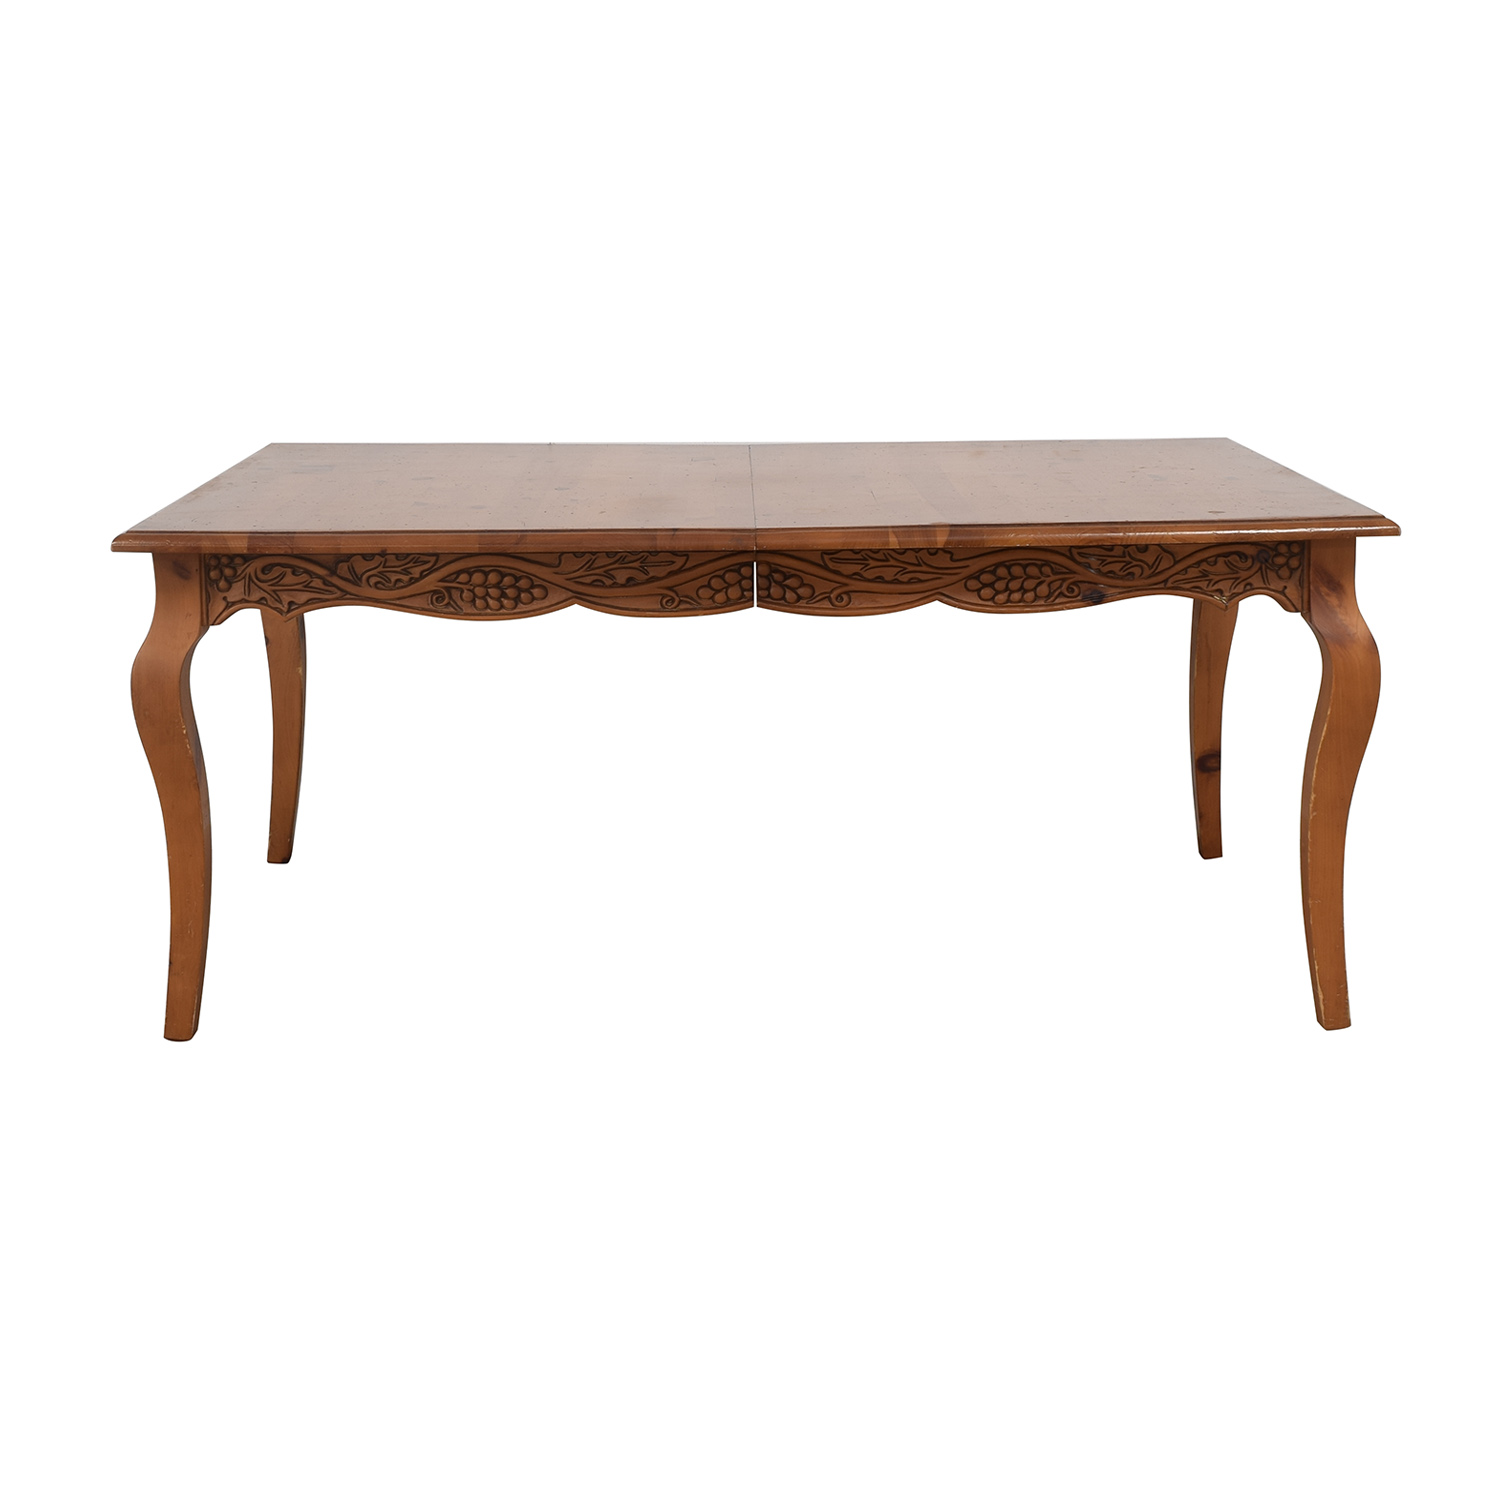 Huffman Koos Huffman Koos Expanding Dining Table on sale